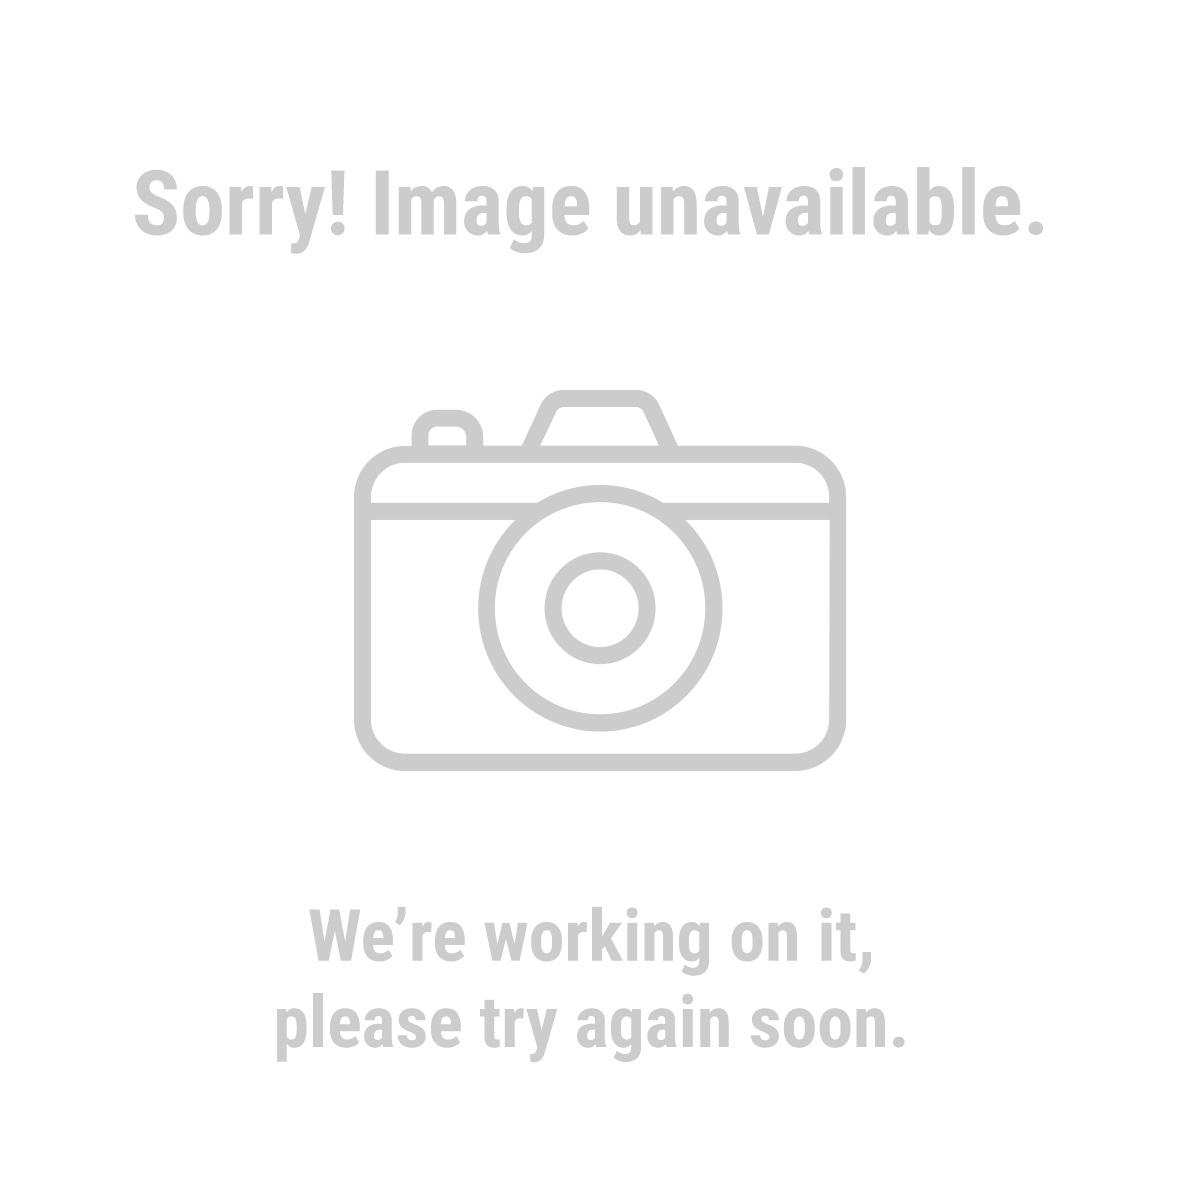 Harbor Freight Garage Car Lifts For Home : Automotive scissor lift harbor freight tools autos post